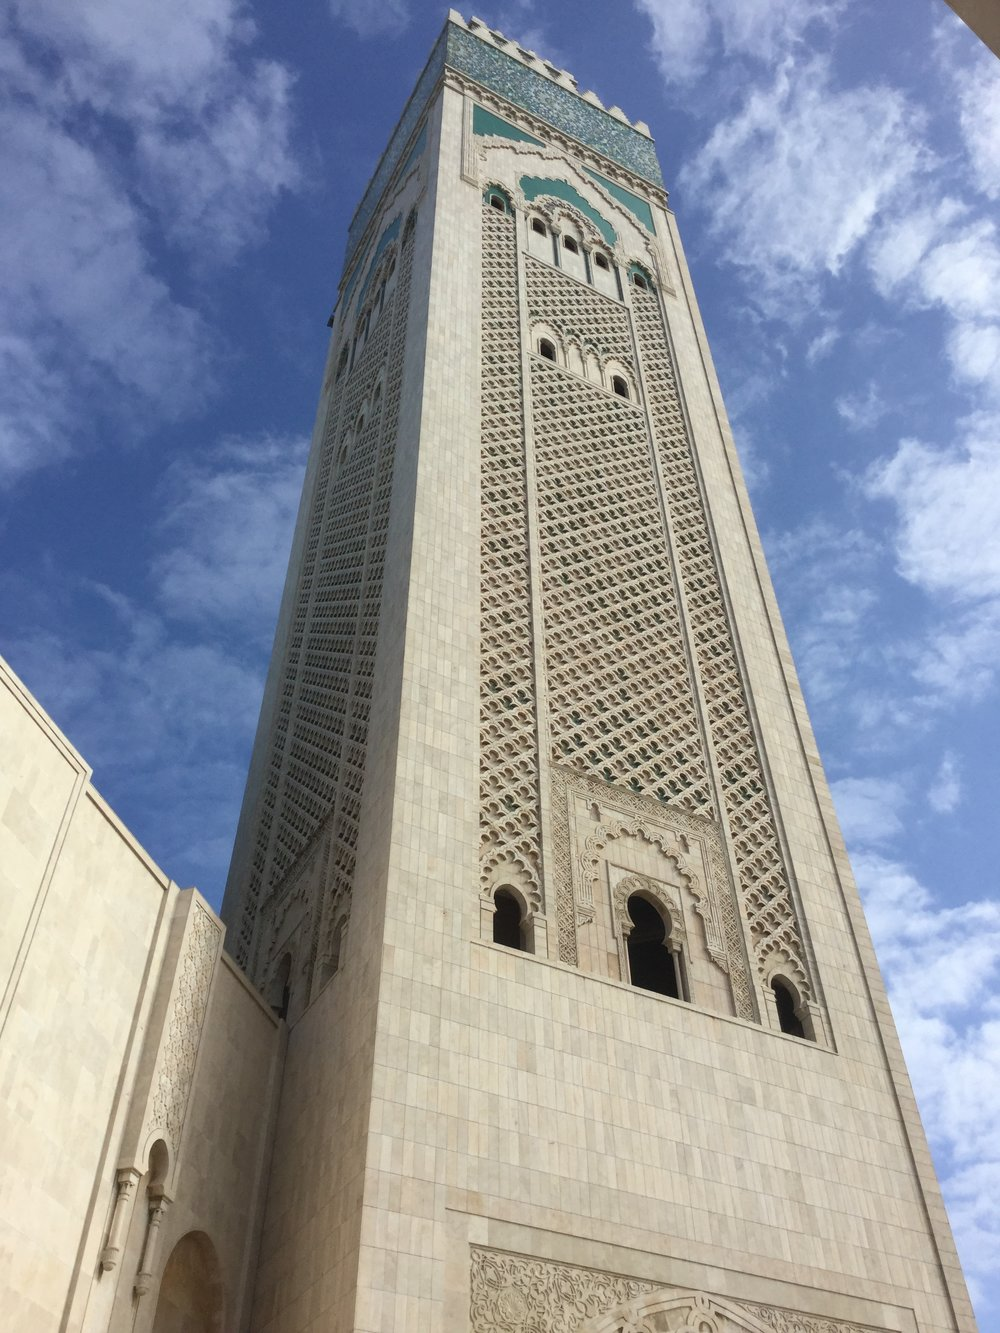 The minaret, from which calls to prayer are broadcast five times a day, is over 200 meters tall.